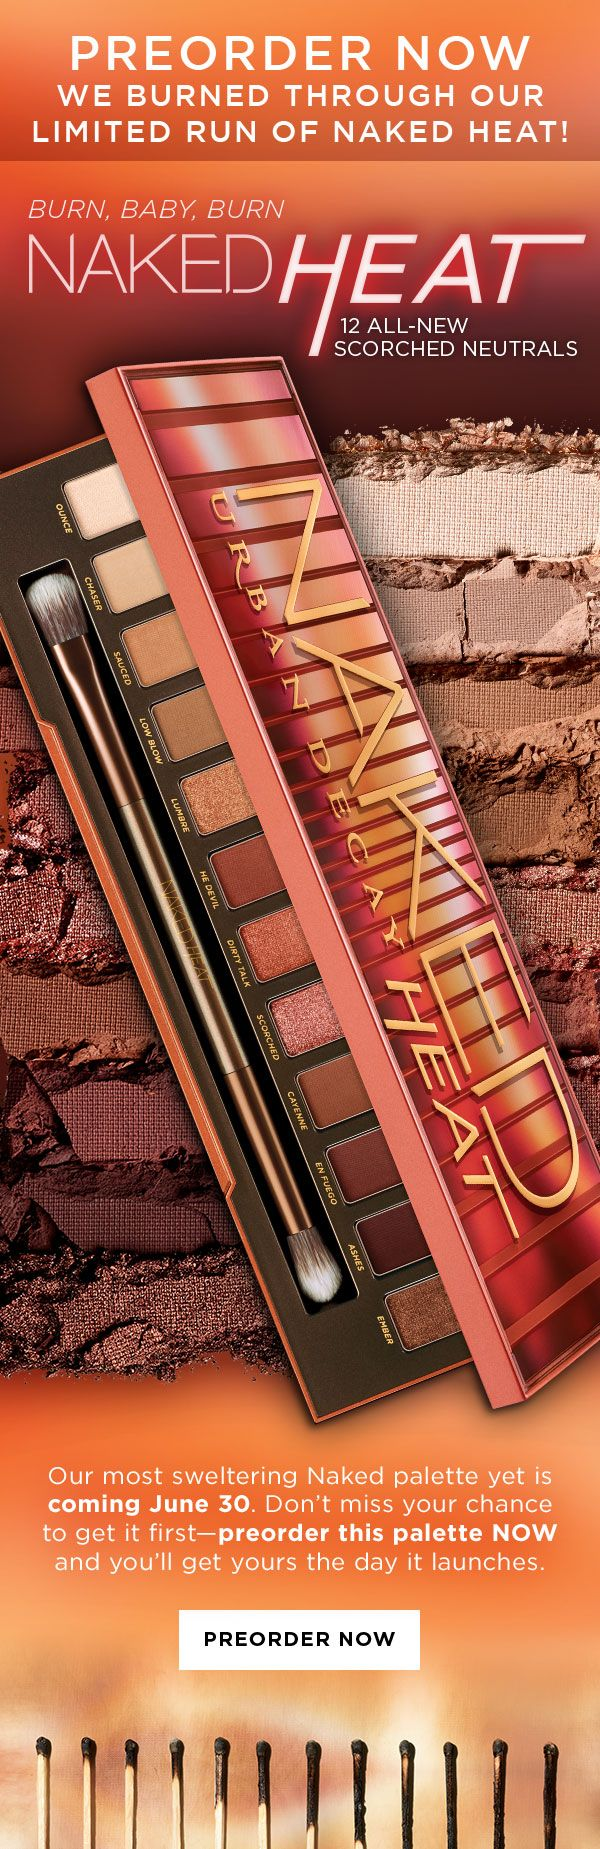 Milled has emails from Urban Decay, including new arrivals, sales, discounts, and coupon codes.